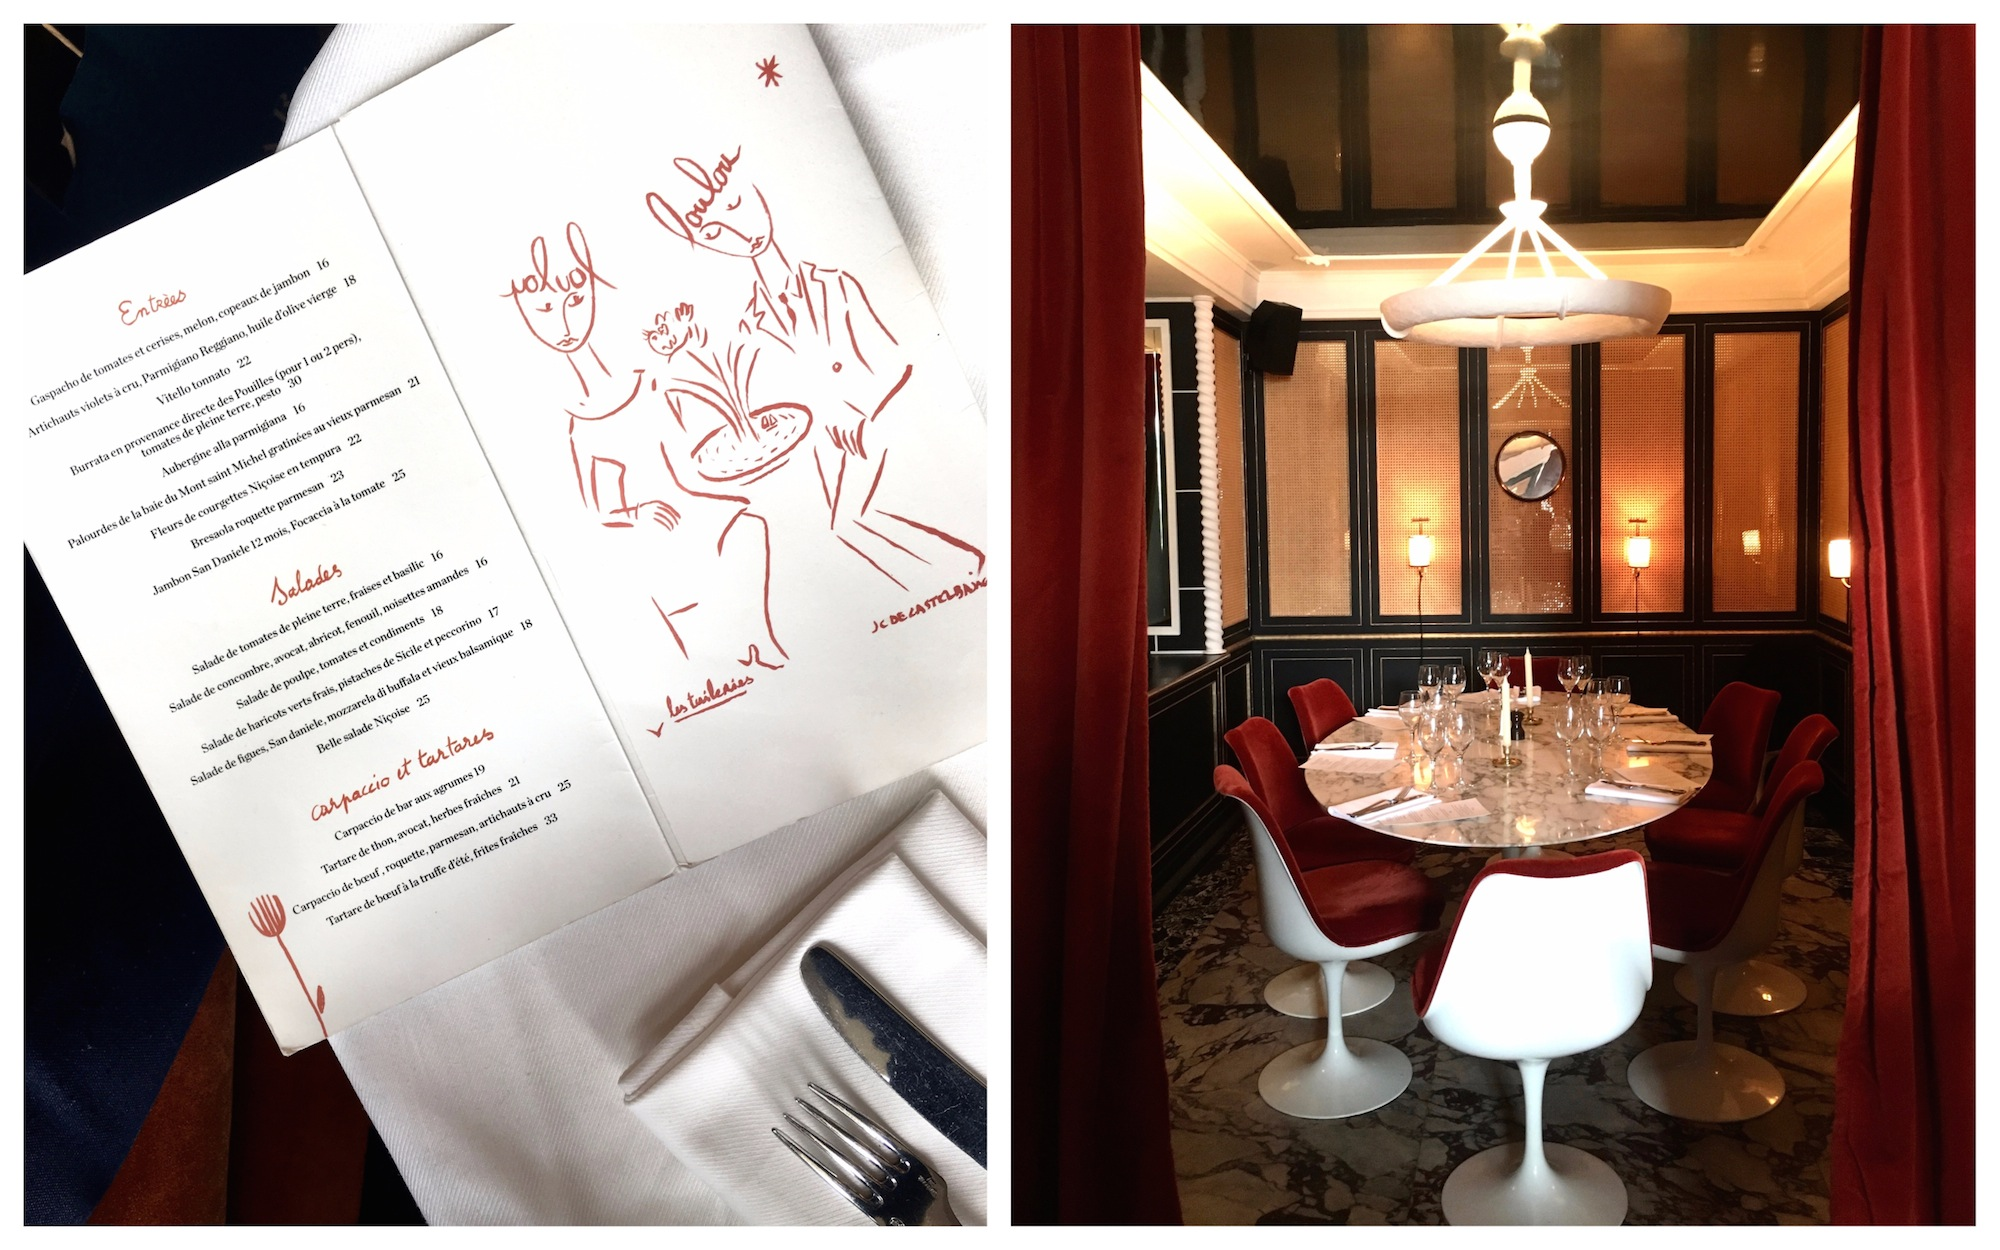 An open menu of French food at LOULOU restaurant in Paris' Musée des Arts Décoratifs (left). The private dining space for 8 people with touches of red and white (right).